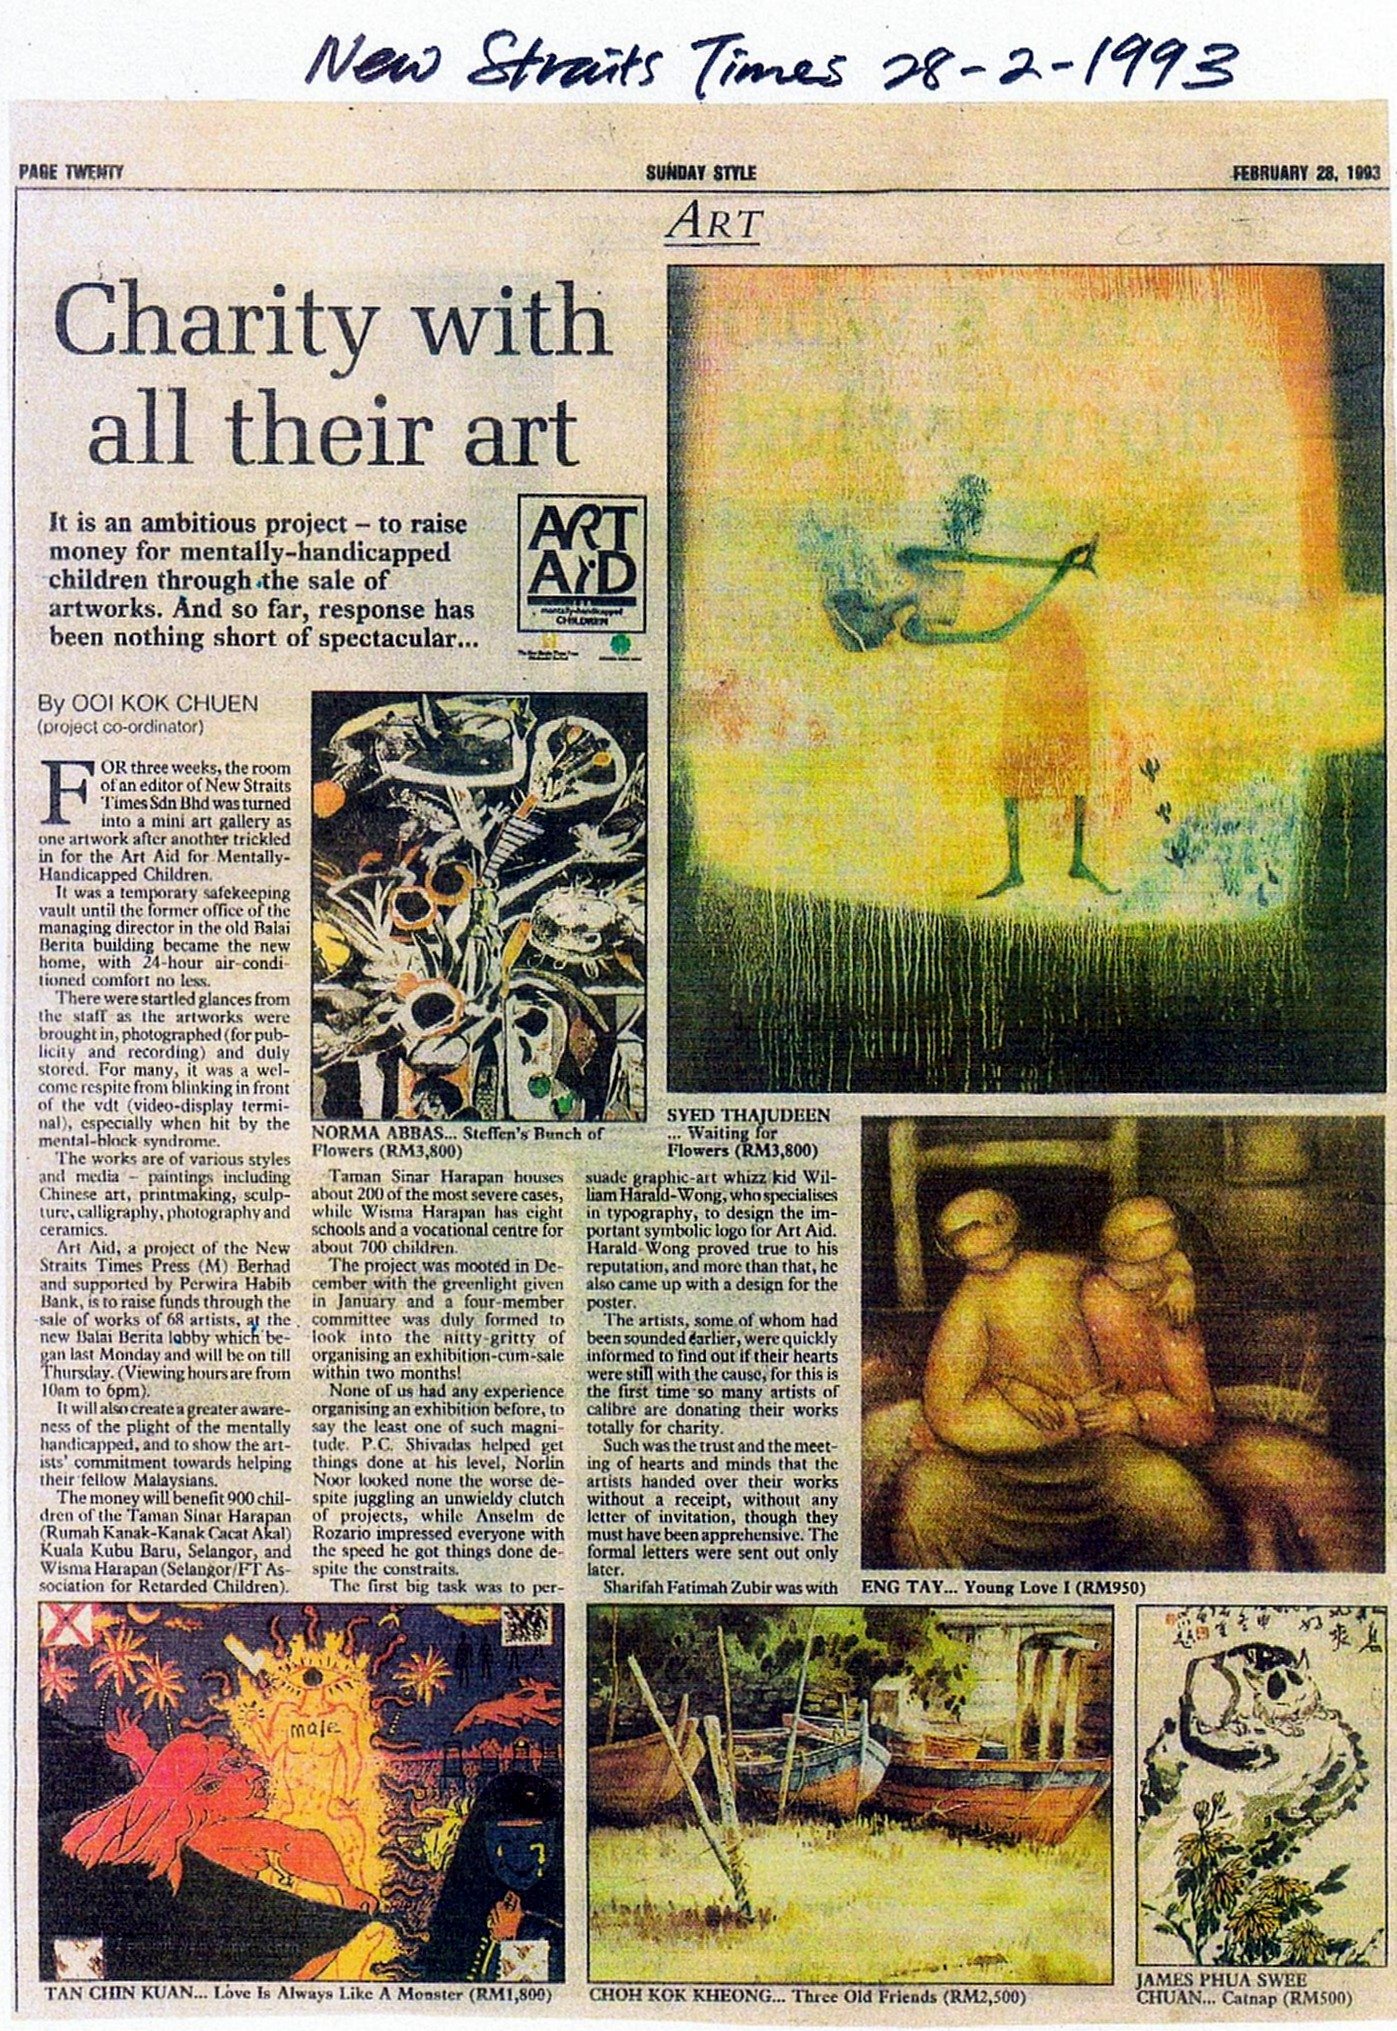 I participated in 'Art Aid' , a charity art show organized by the News Straits Times raising funds for mentally-handicapped children in 1993.